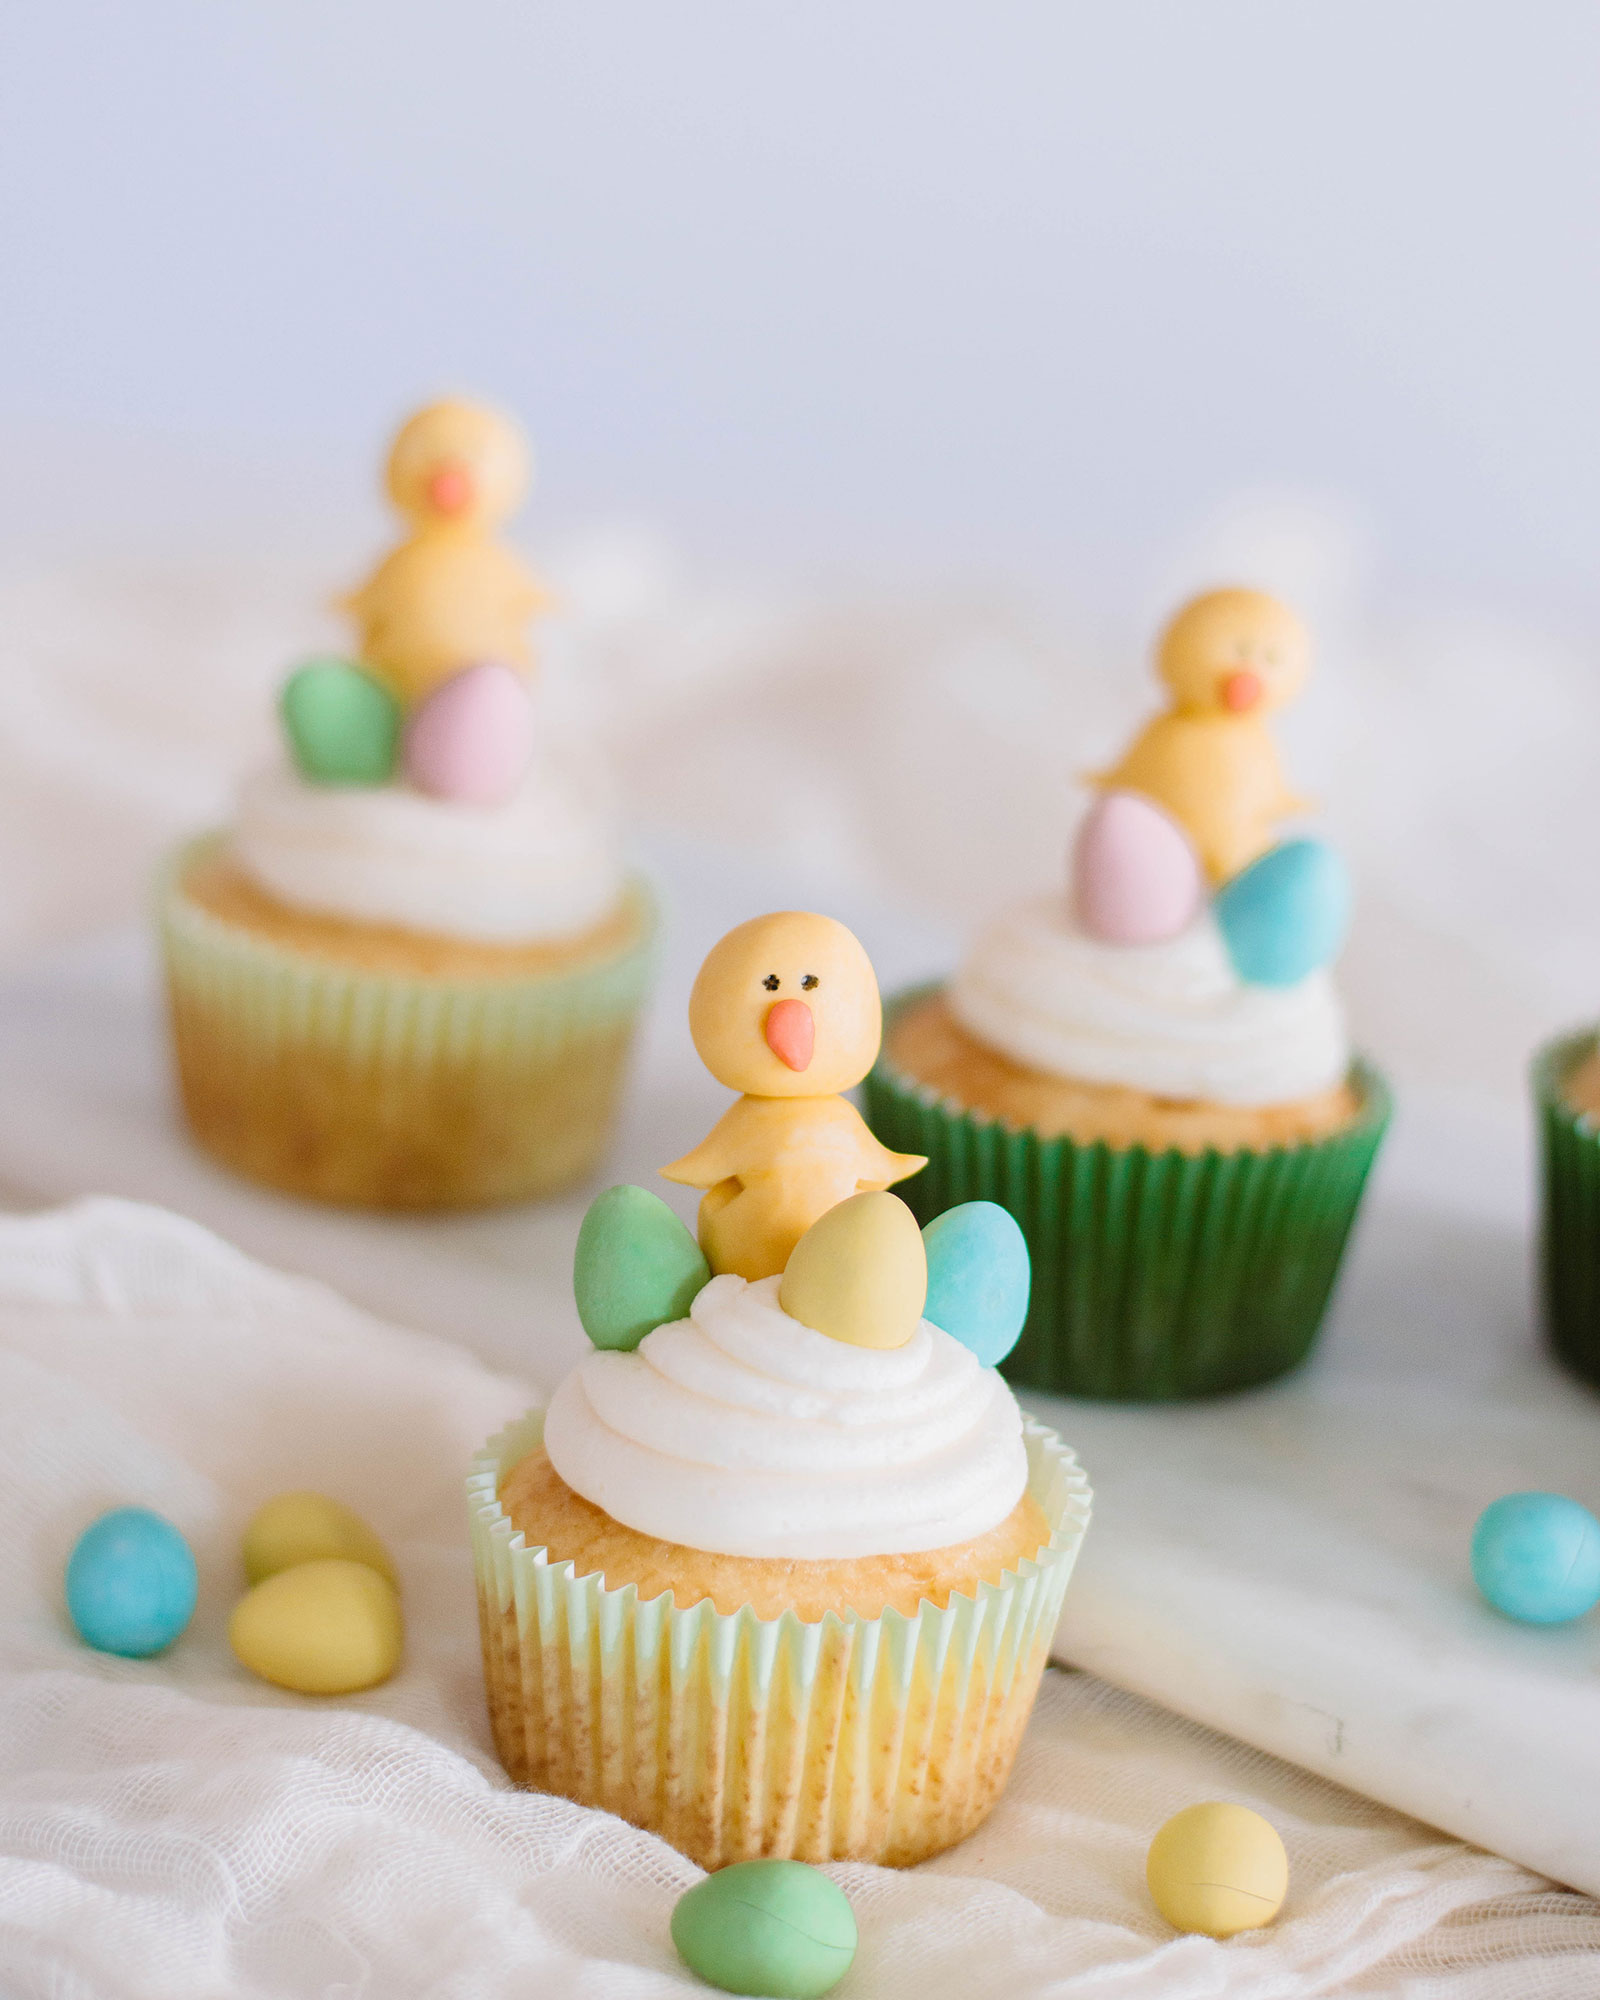 The Cutest Easter Dessert: Spring Chick Cupcakes